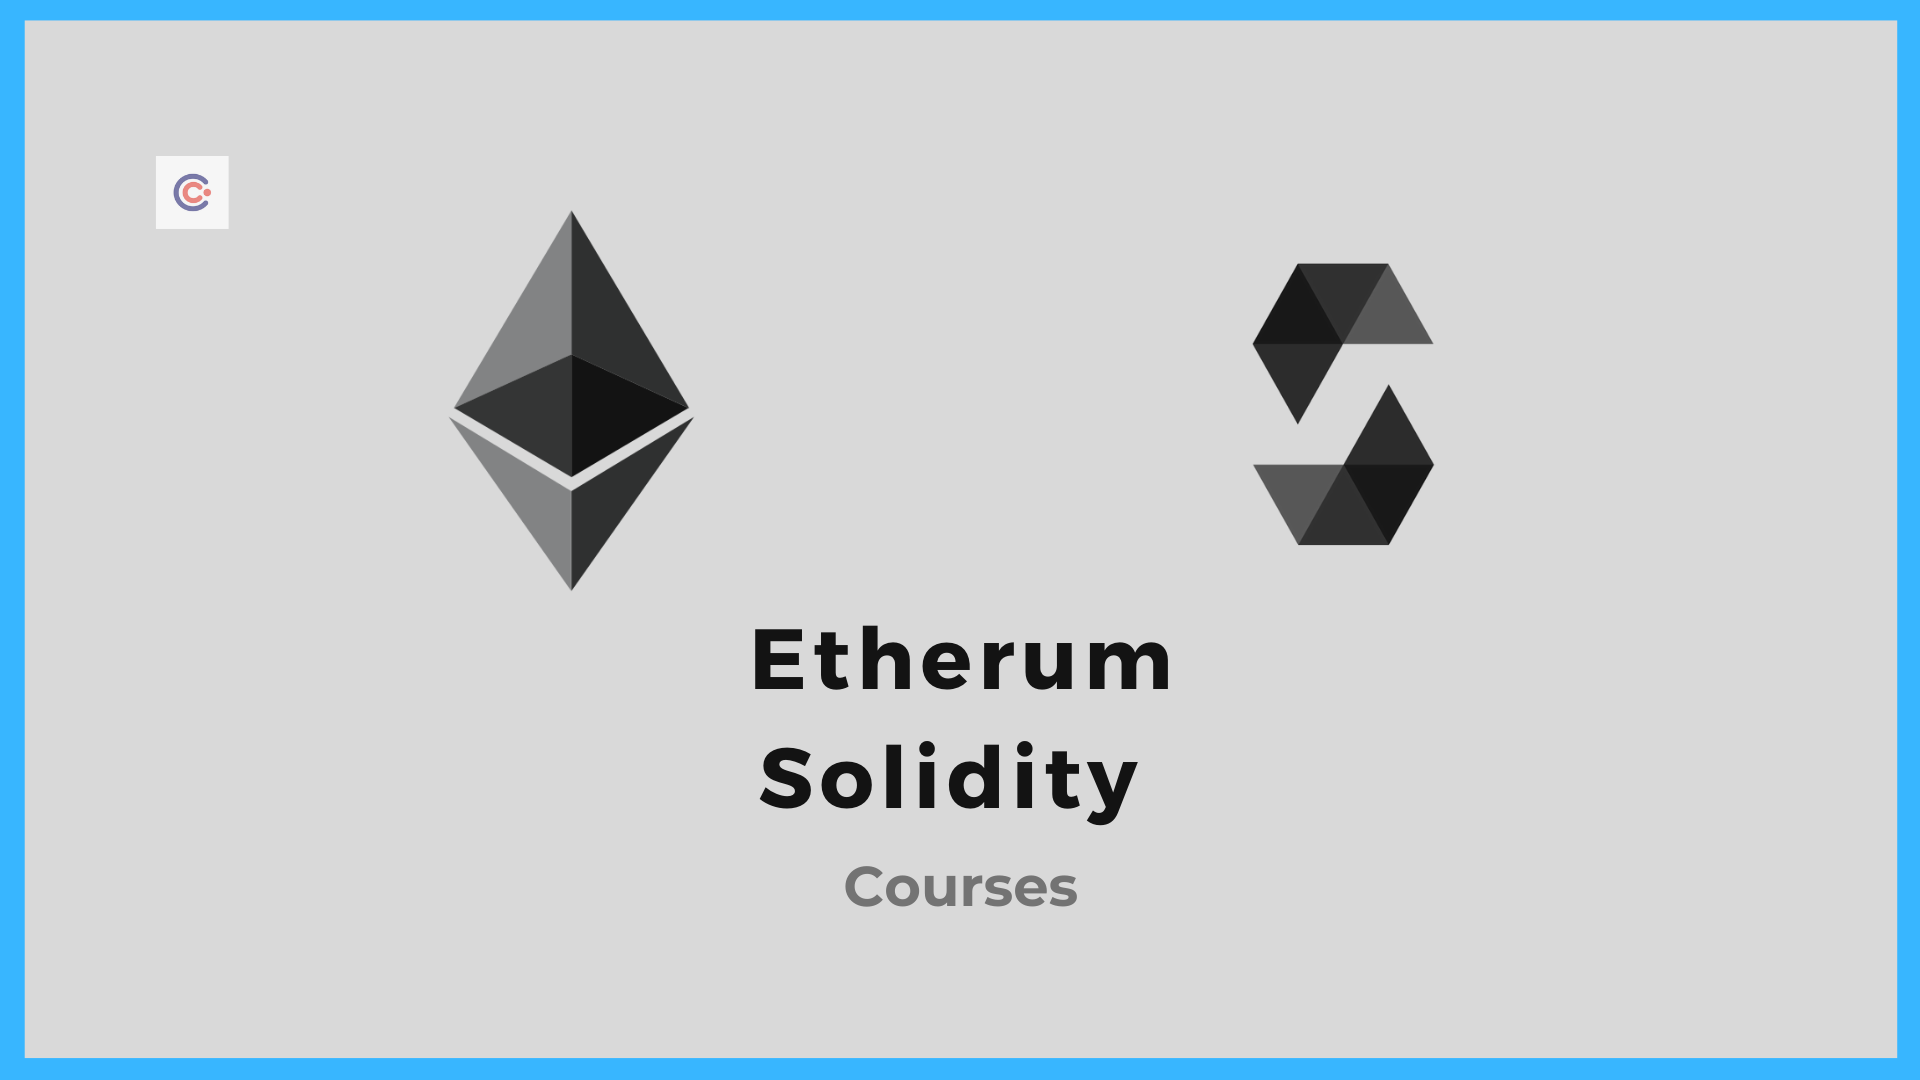 10 Best Ethereum Solidity Courses - Learn Etherum Solidity Online